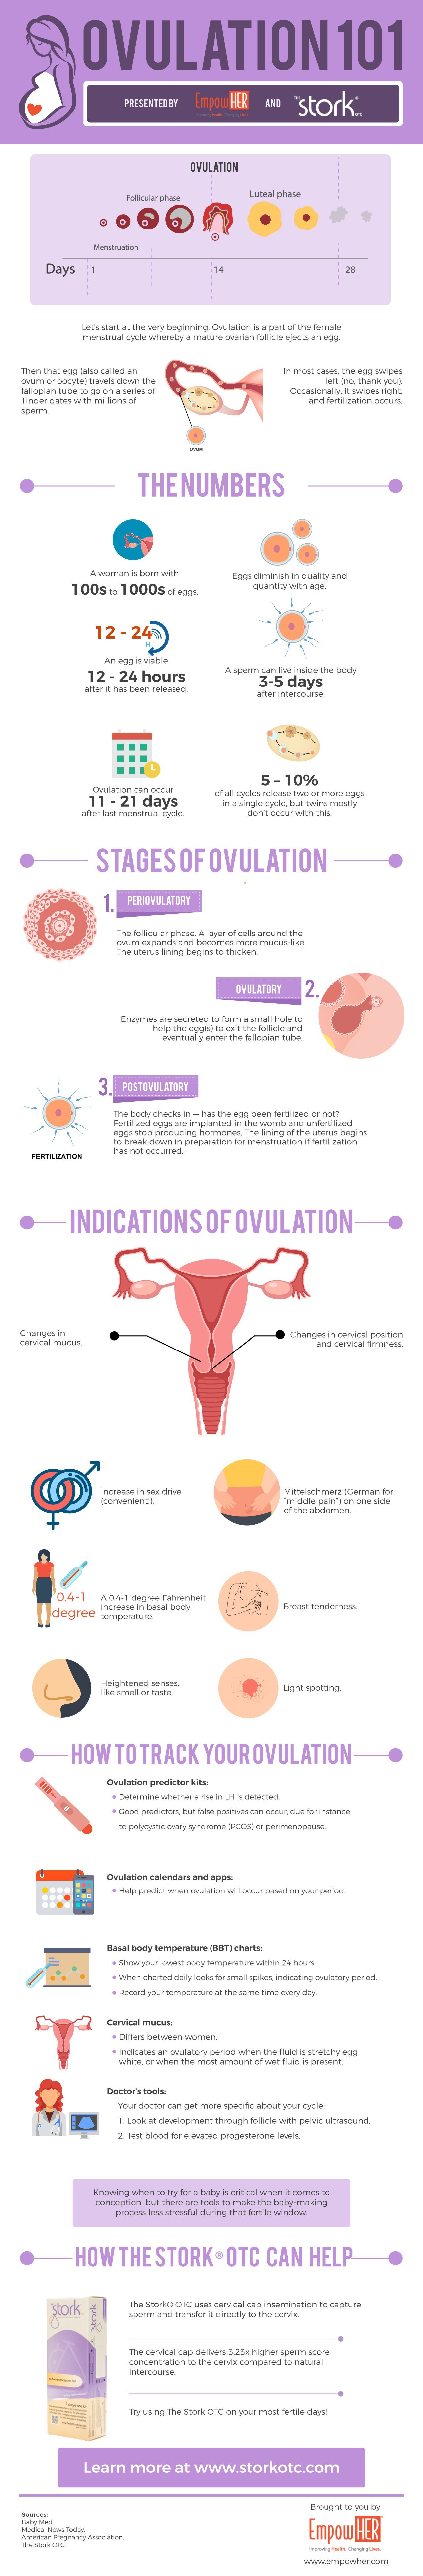 timeline of conception implantation picture VERY cool